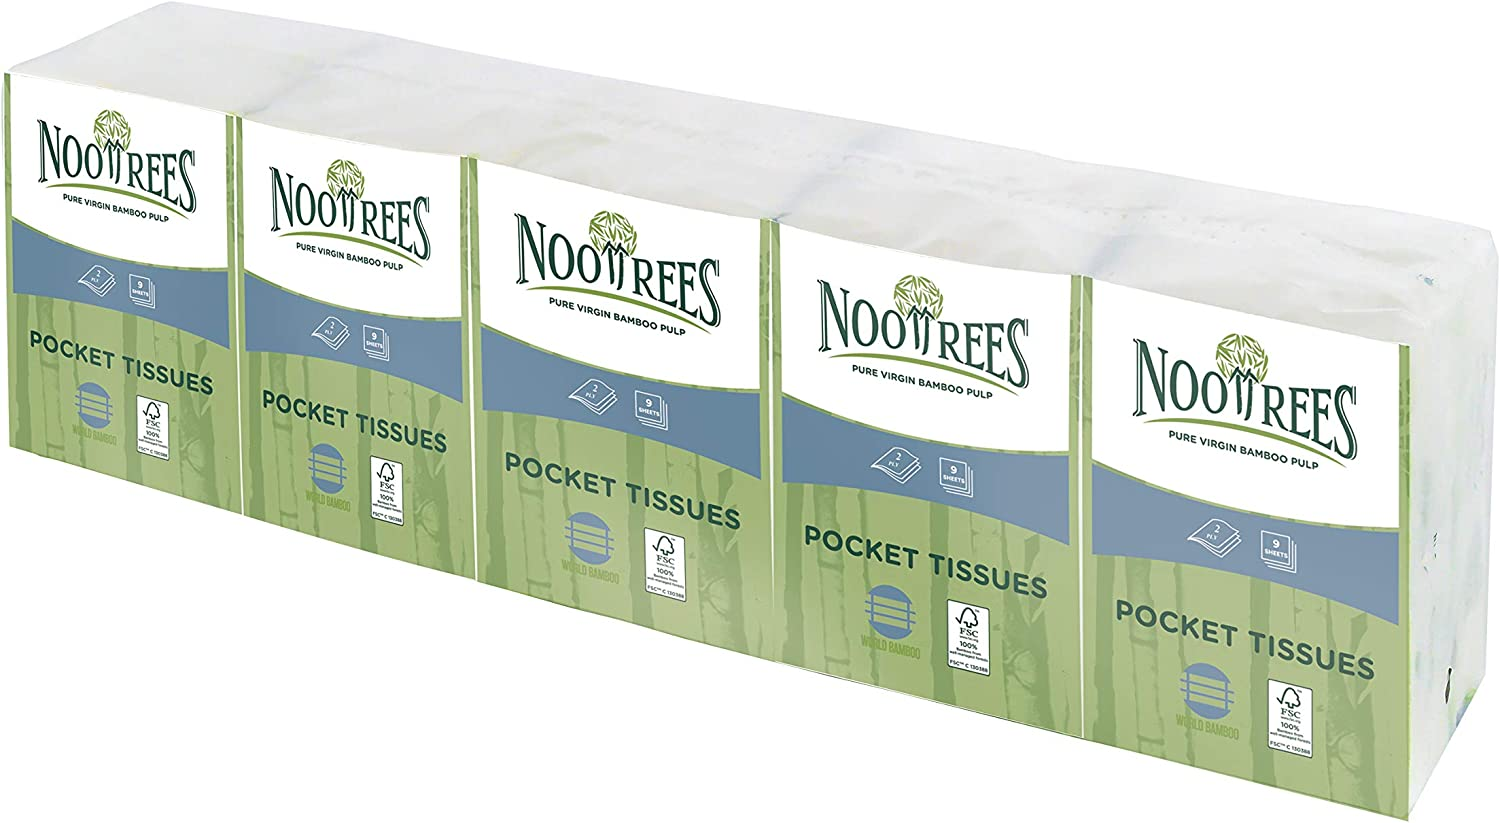 NooTrees Fixed price for sale Bamboo 2-Ply Pocket Tissue Soft Certifi Sheets FSC 9 Online limited product